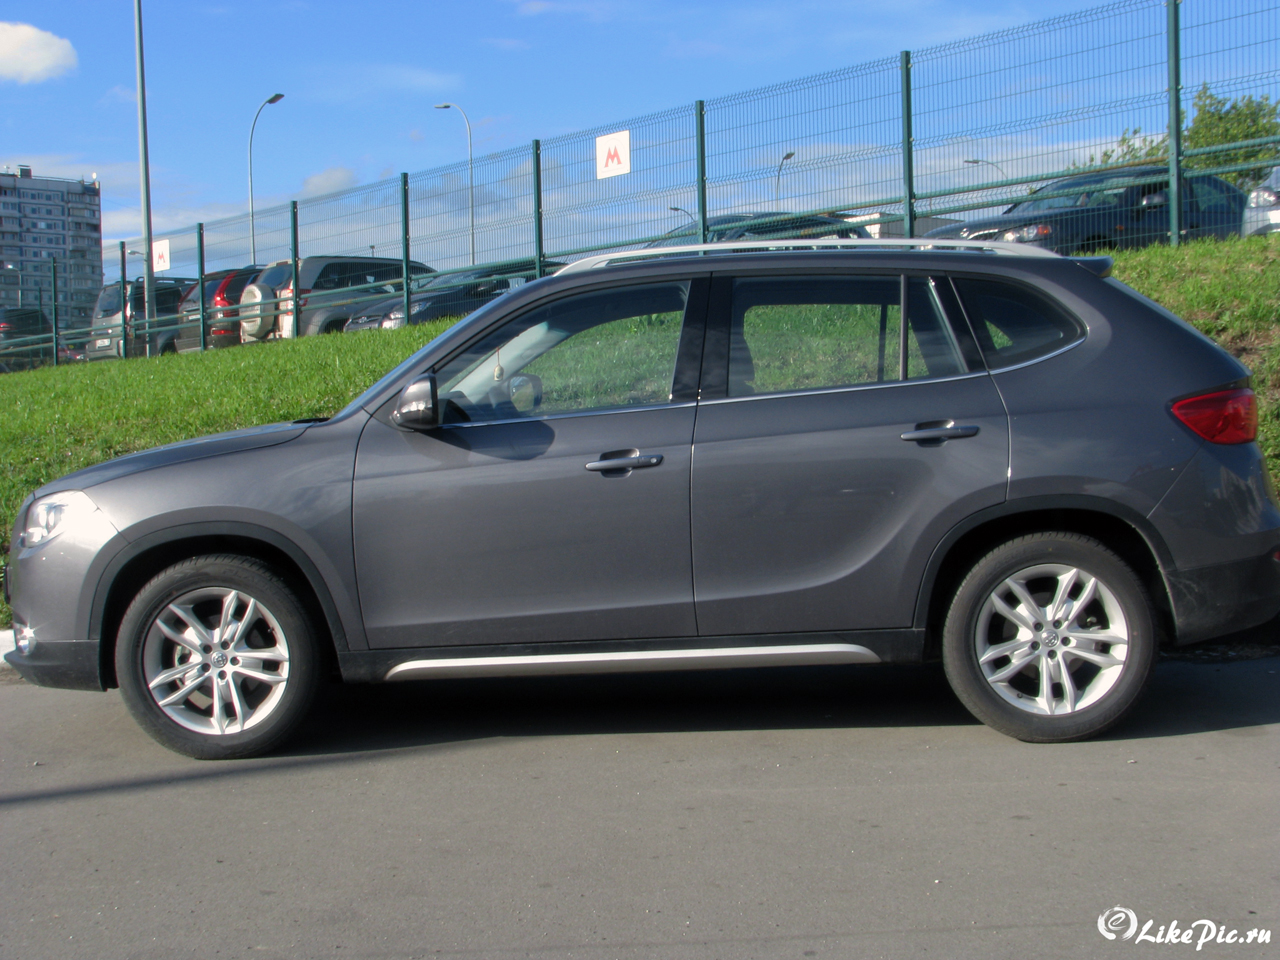 Brilliance V5 1.6 2000 photo - 2